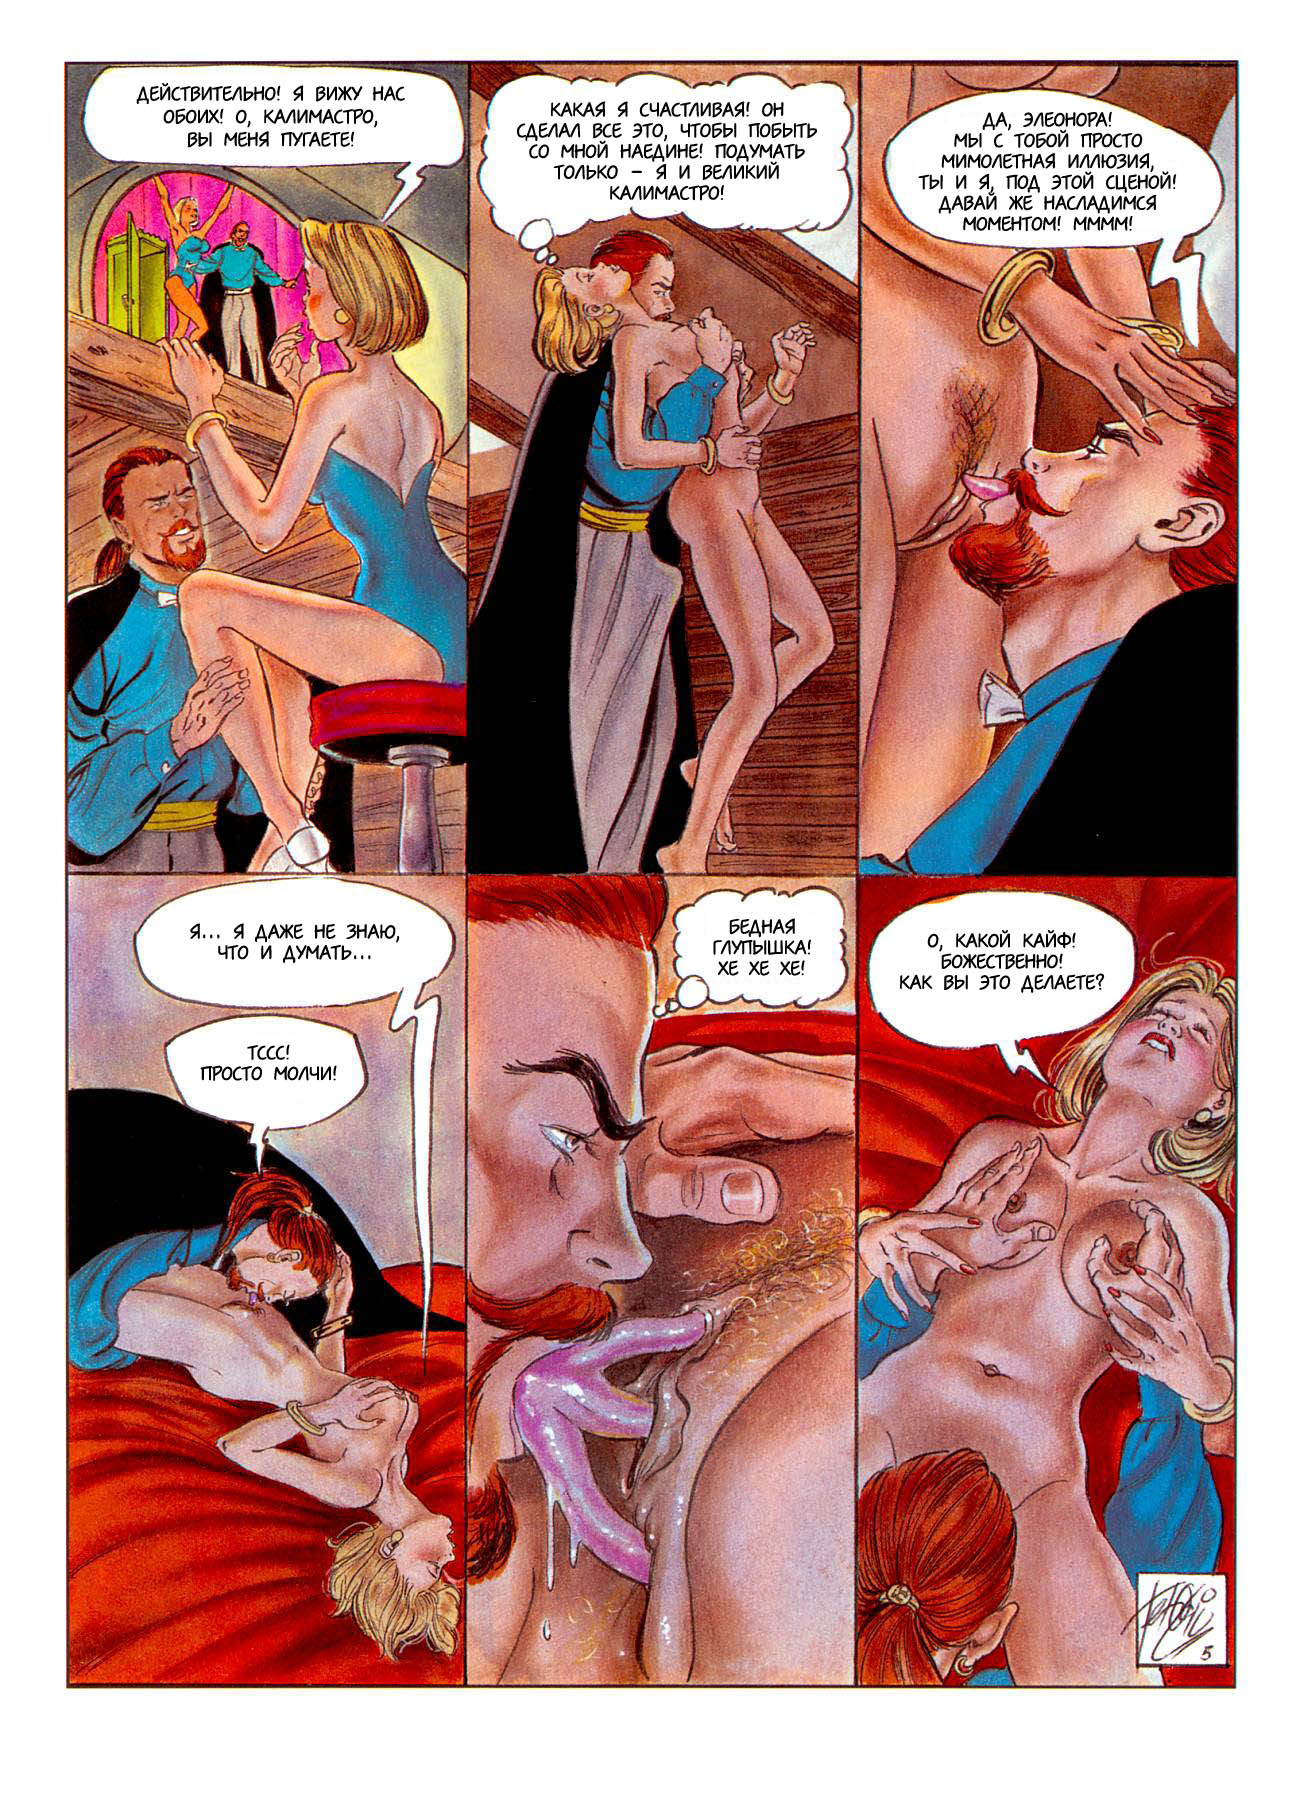 Erotic komix erotic comic